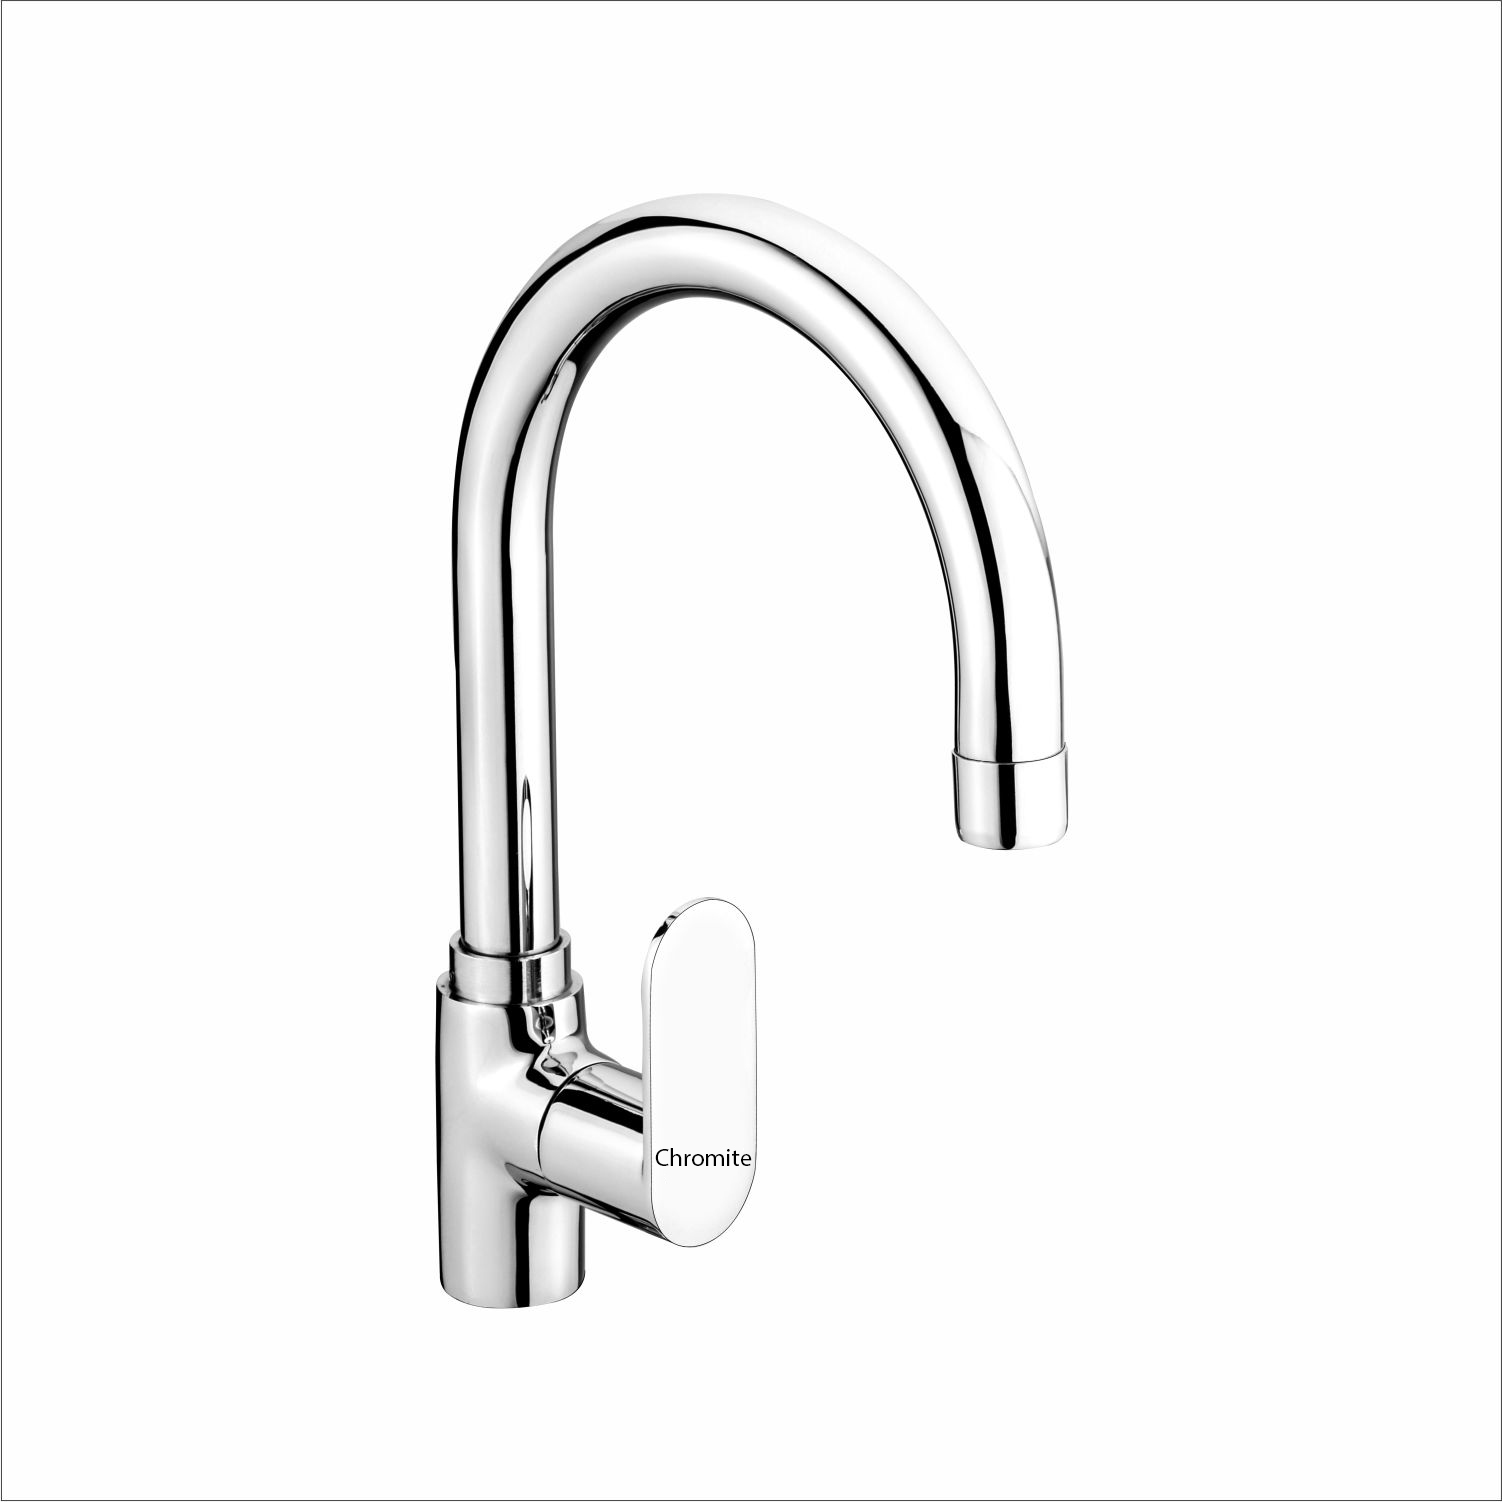 OPL-110 Swan Neck With Regular Swinging Spout (Table Mounted)